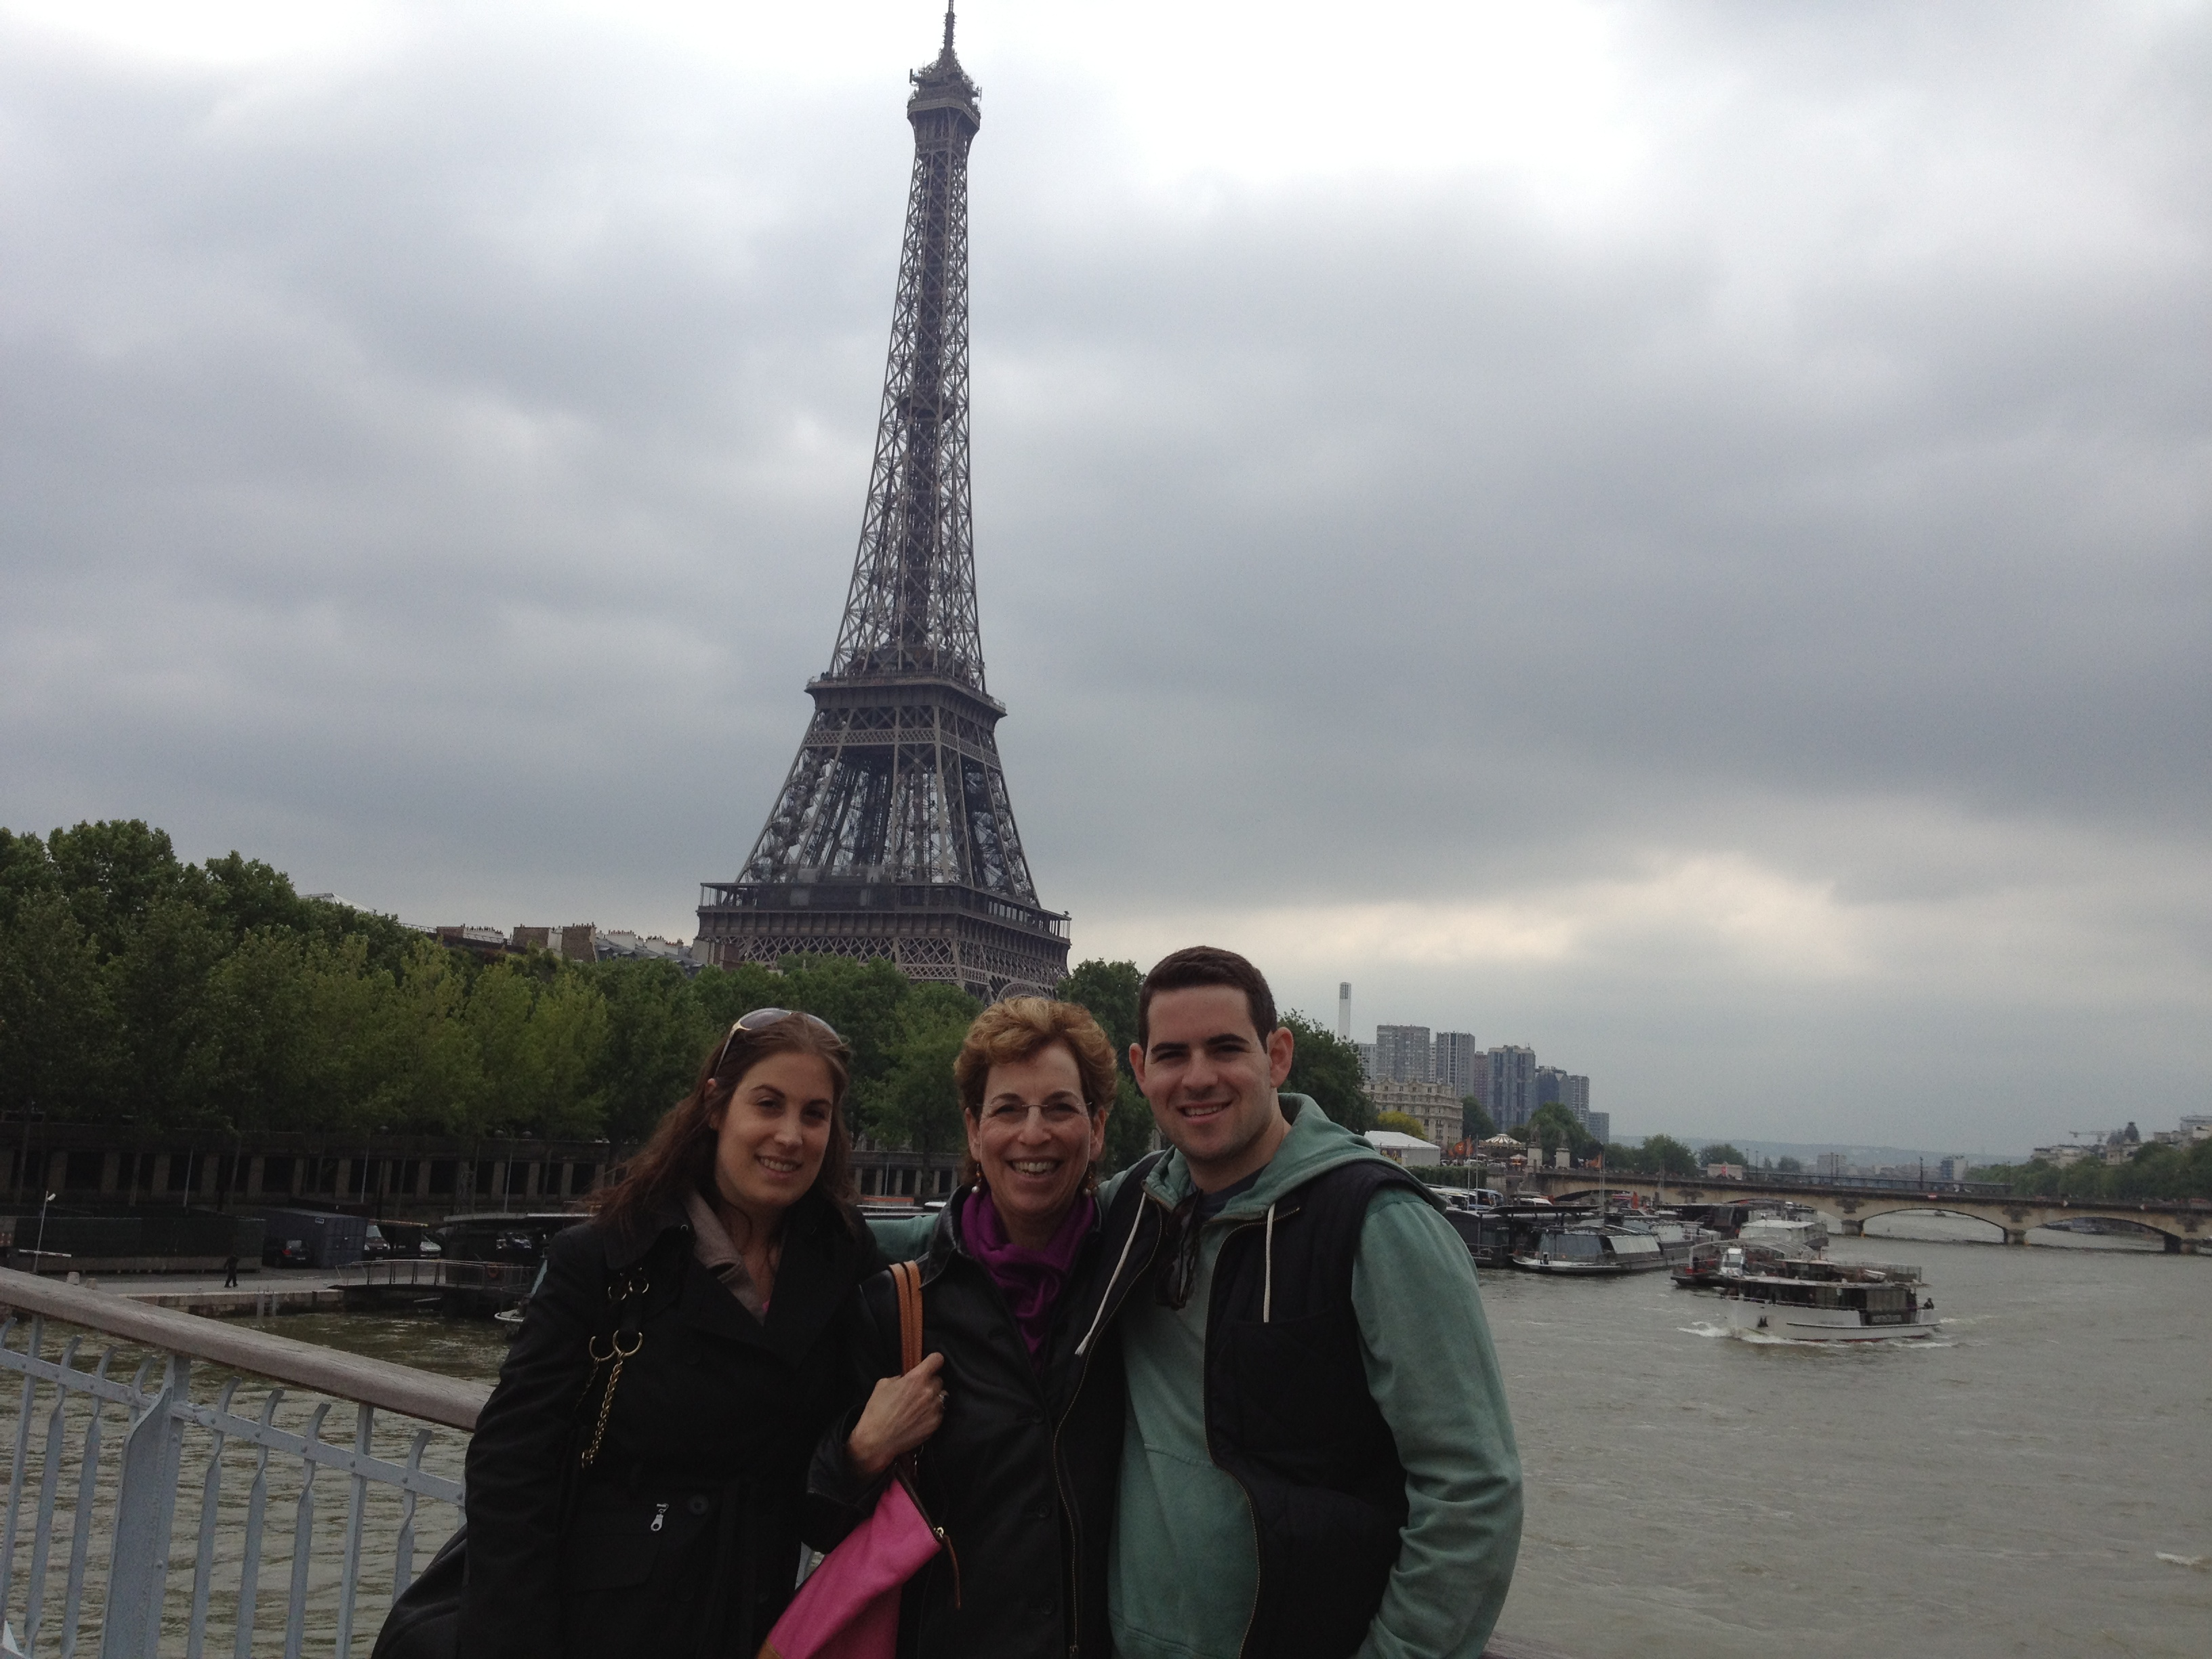 life after 50, Paris vacation, boomer travel